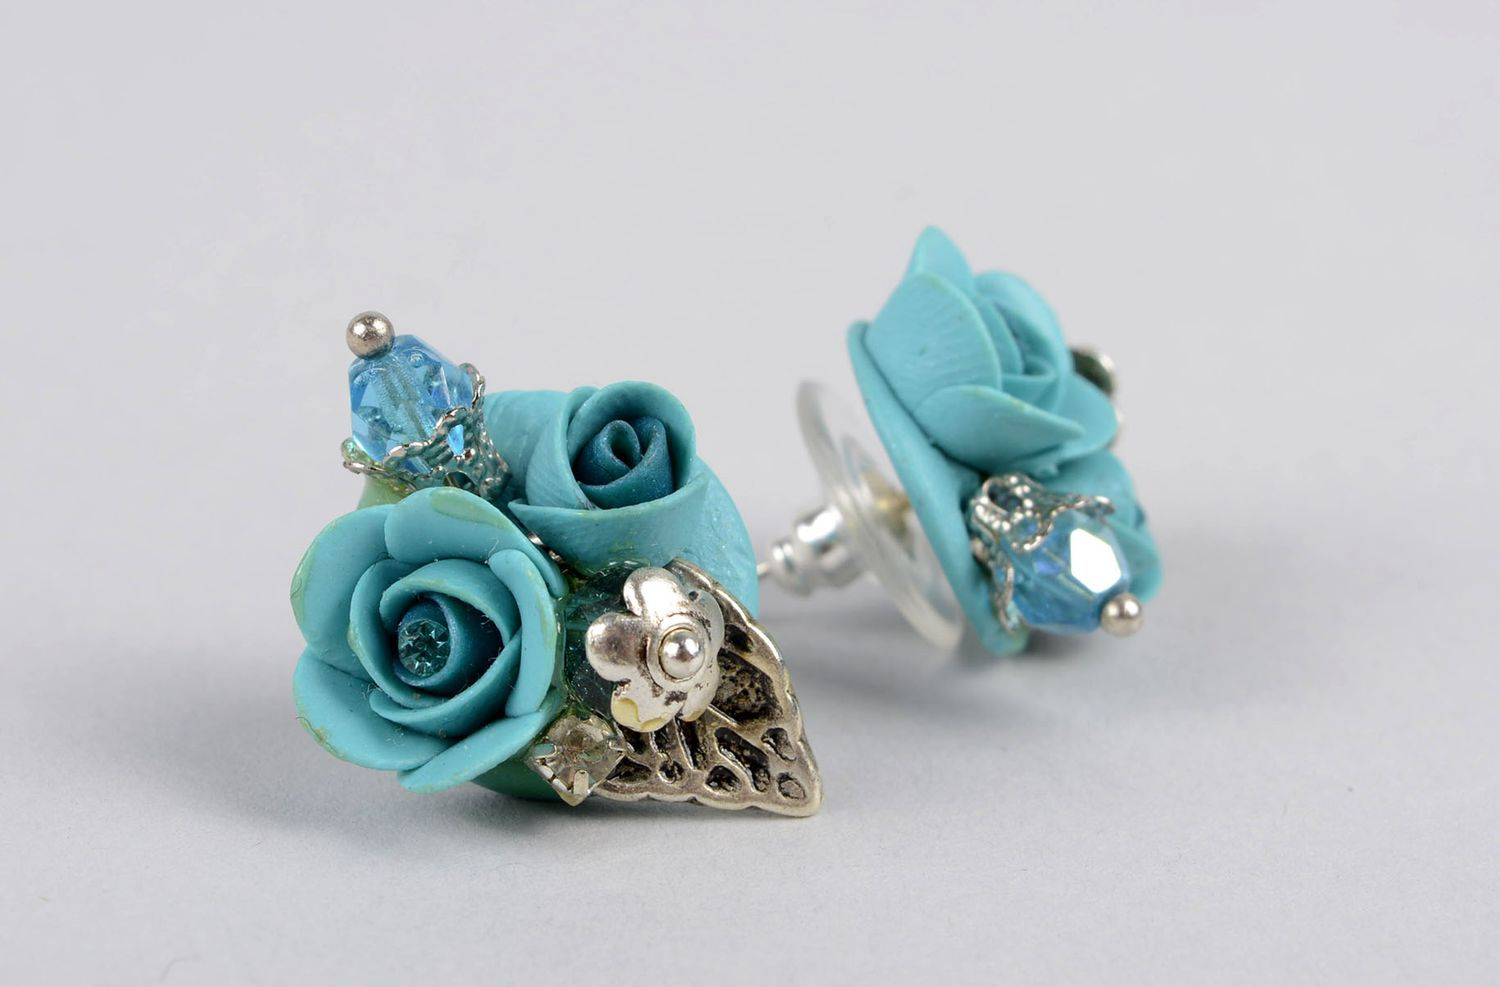 Handmade stud earrings polymer clay accessories plastic earrings with flowers photo 4